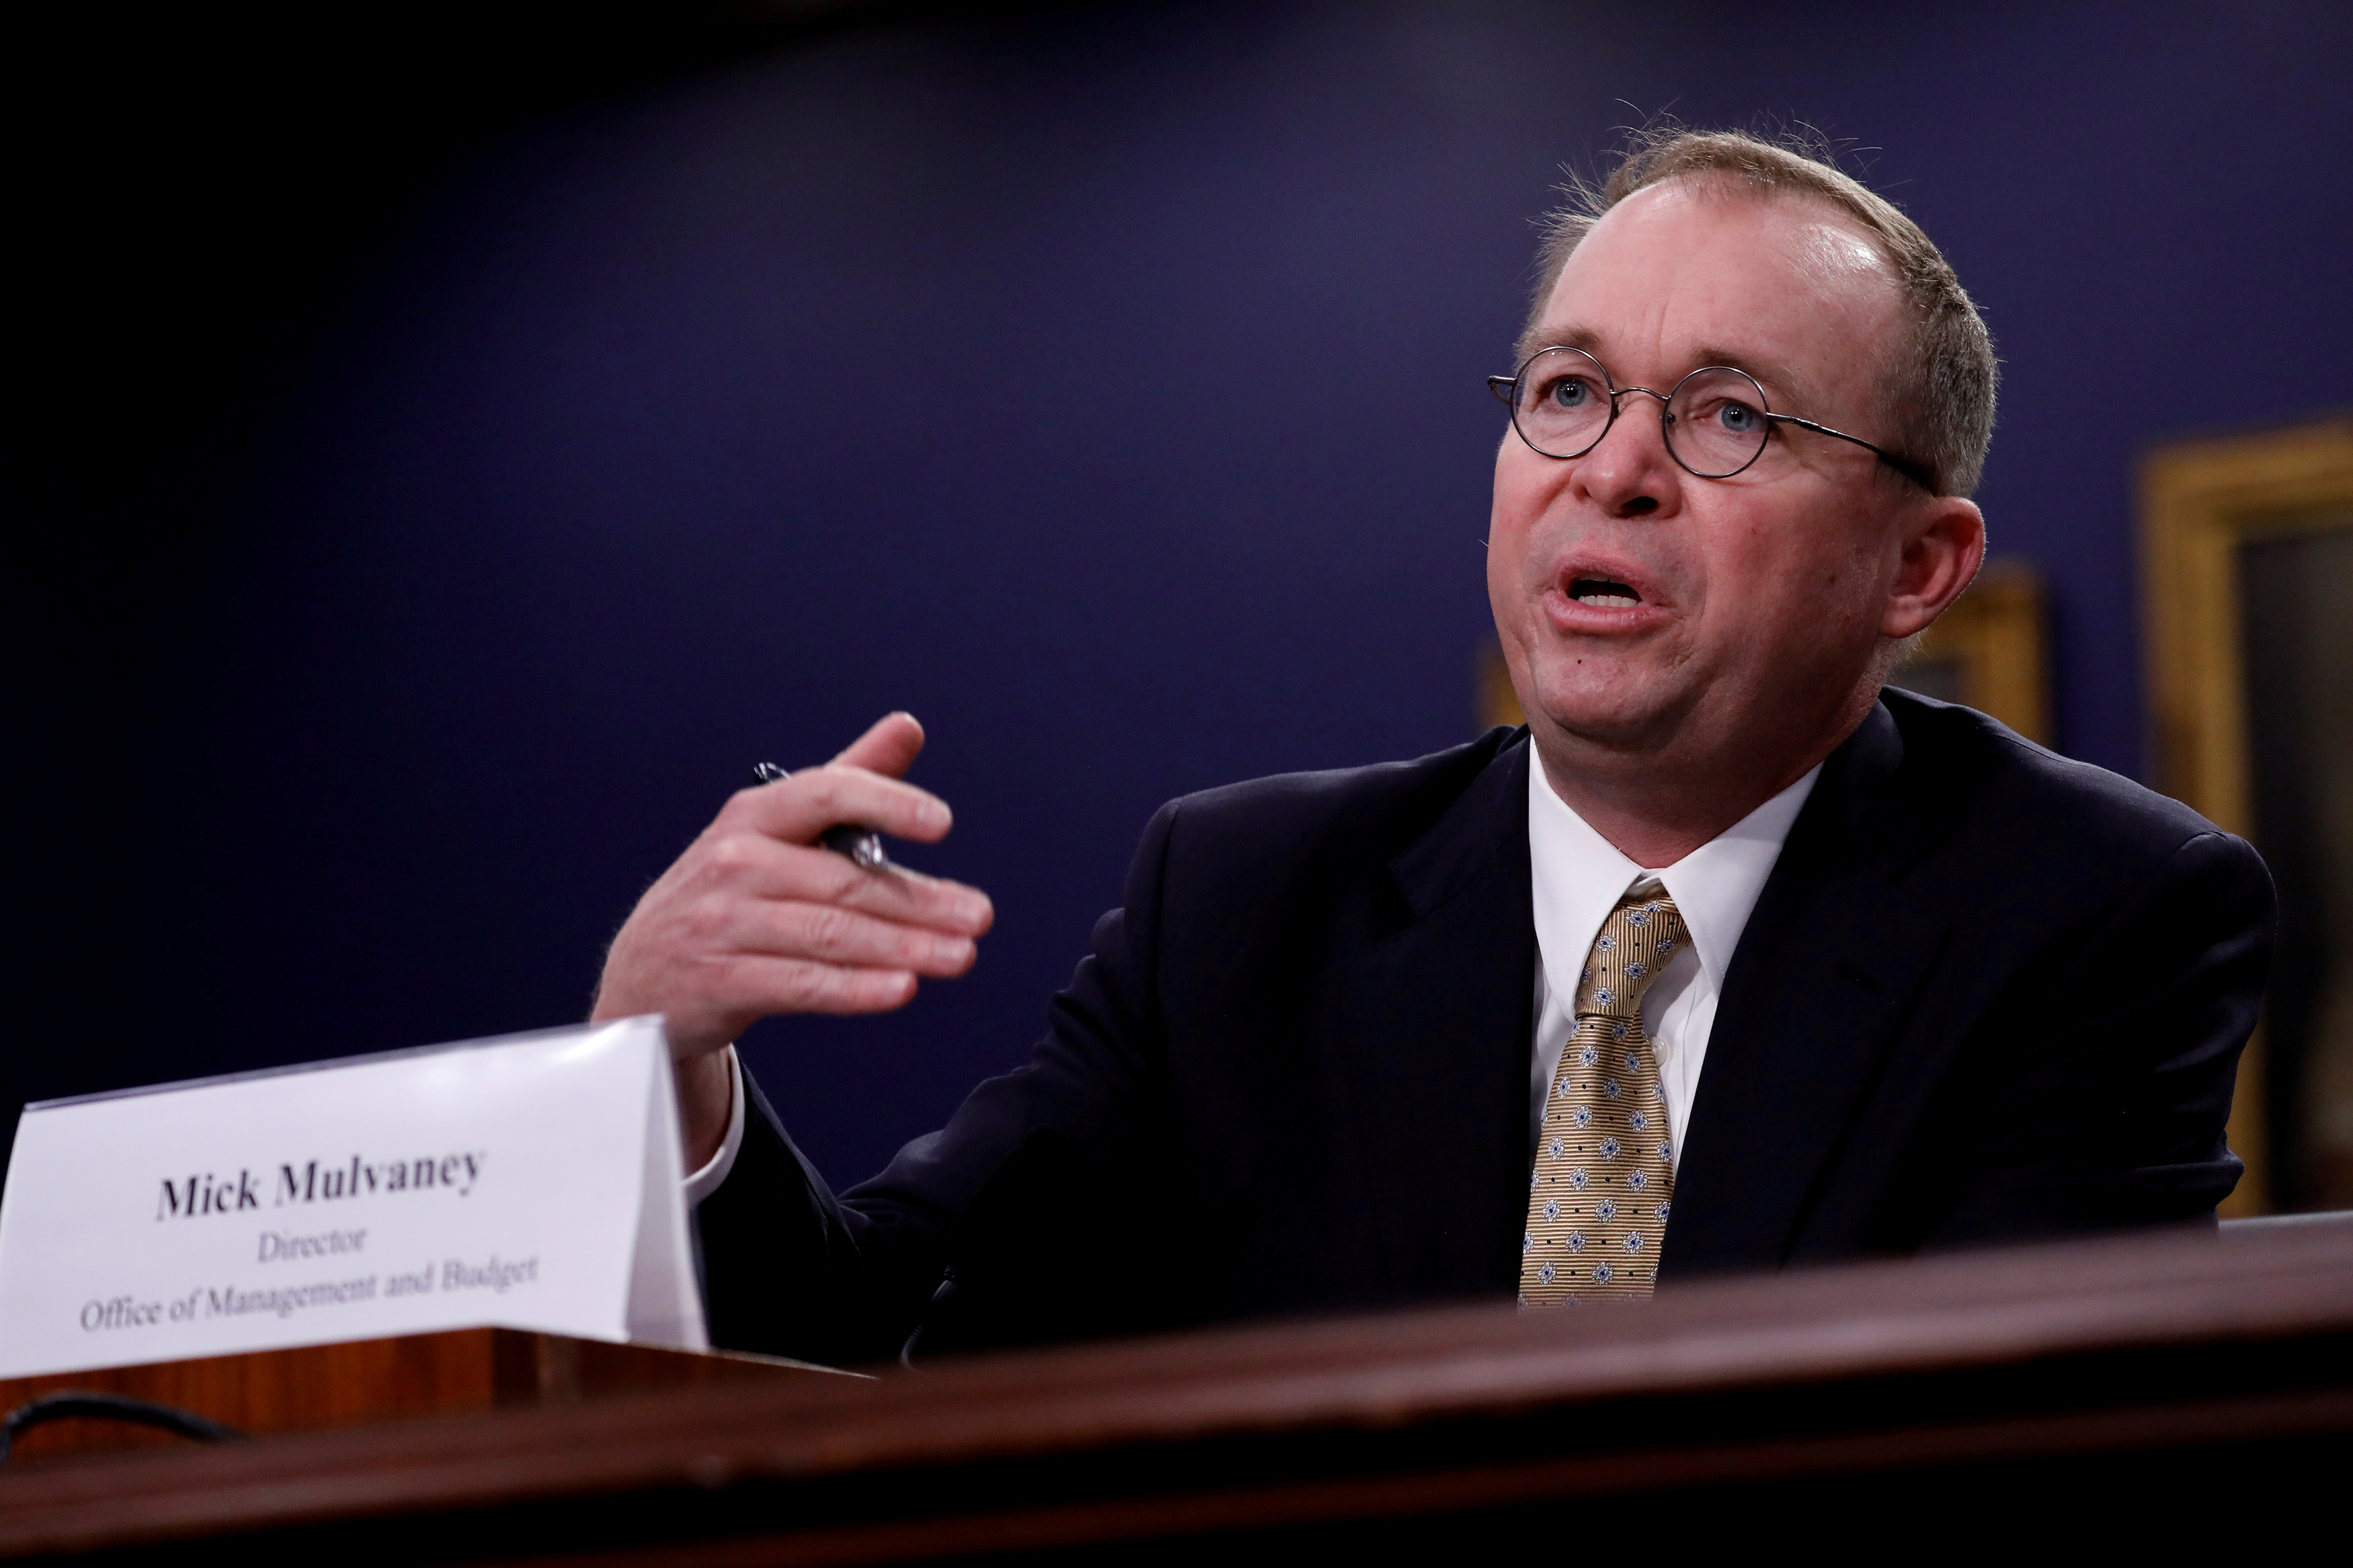 Mick Mulvaney testifies before the House Appropriations Subcommittee on Financial Services and General Government on Capitol Hill in Washington, U.S., April 18, 2018. REUTERS/Aaron P. Bernstein